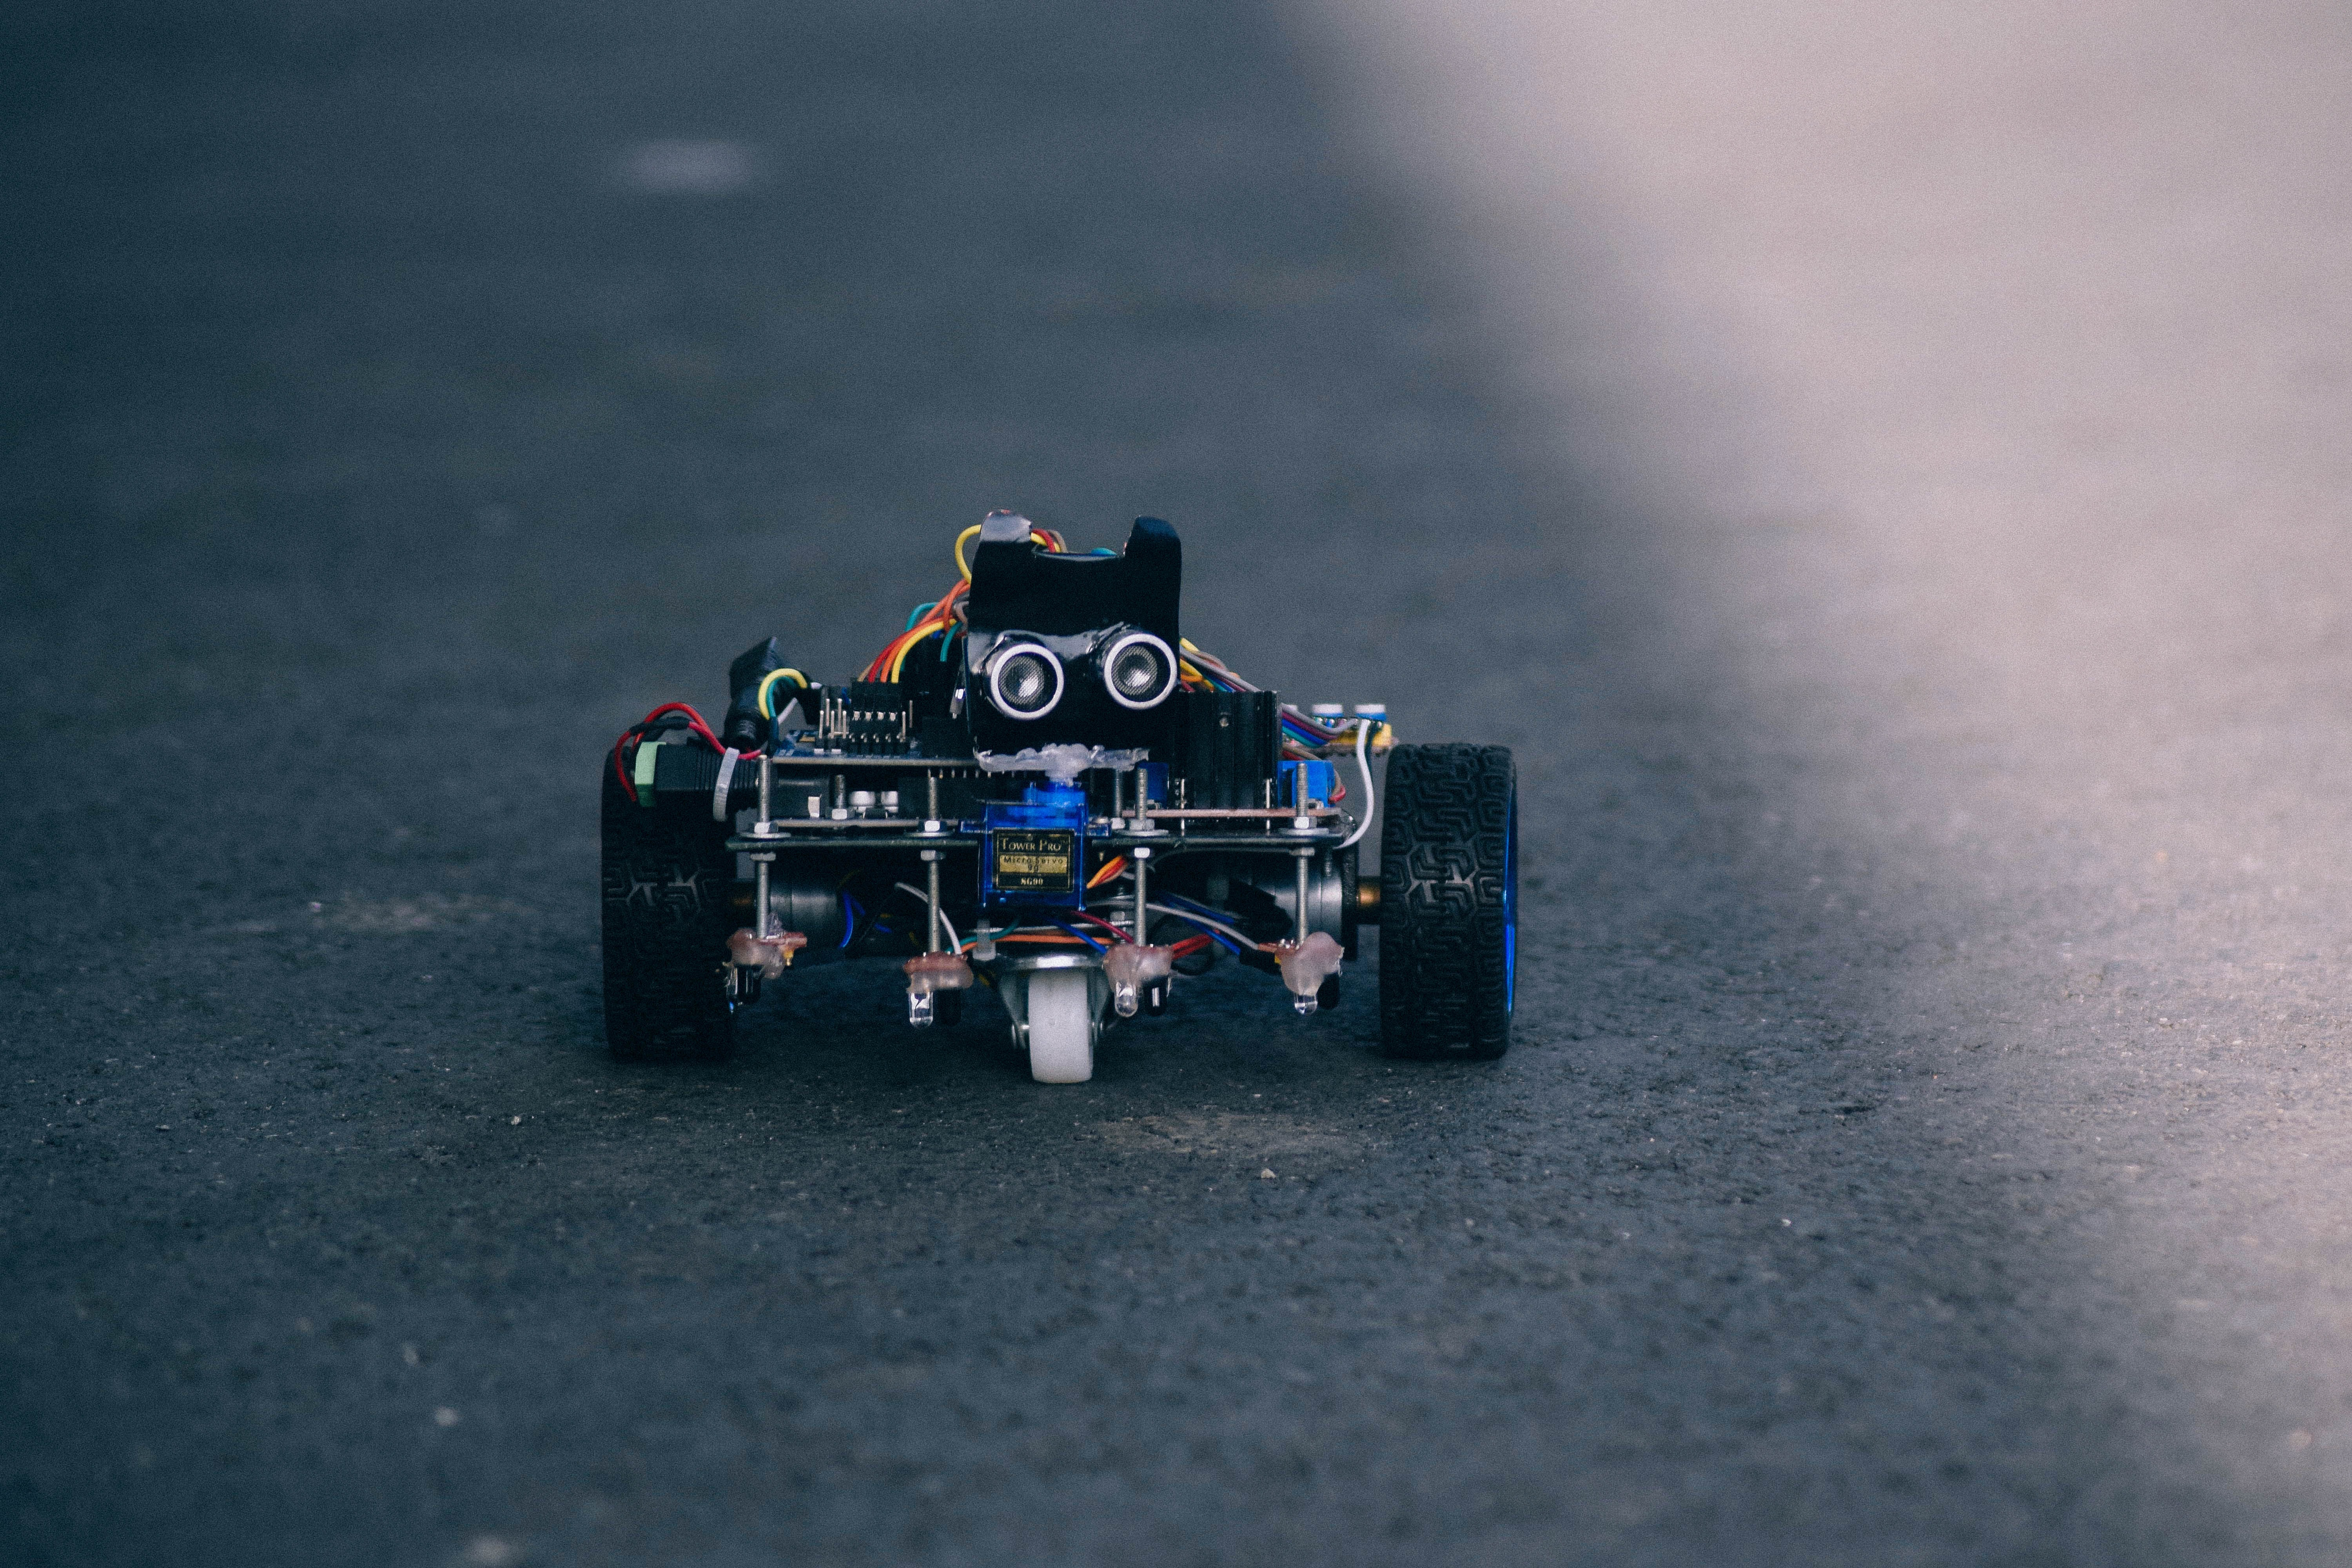 black and blue RC car on gray pavement